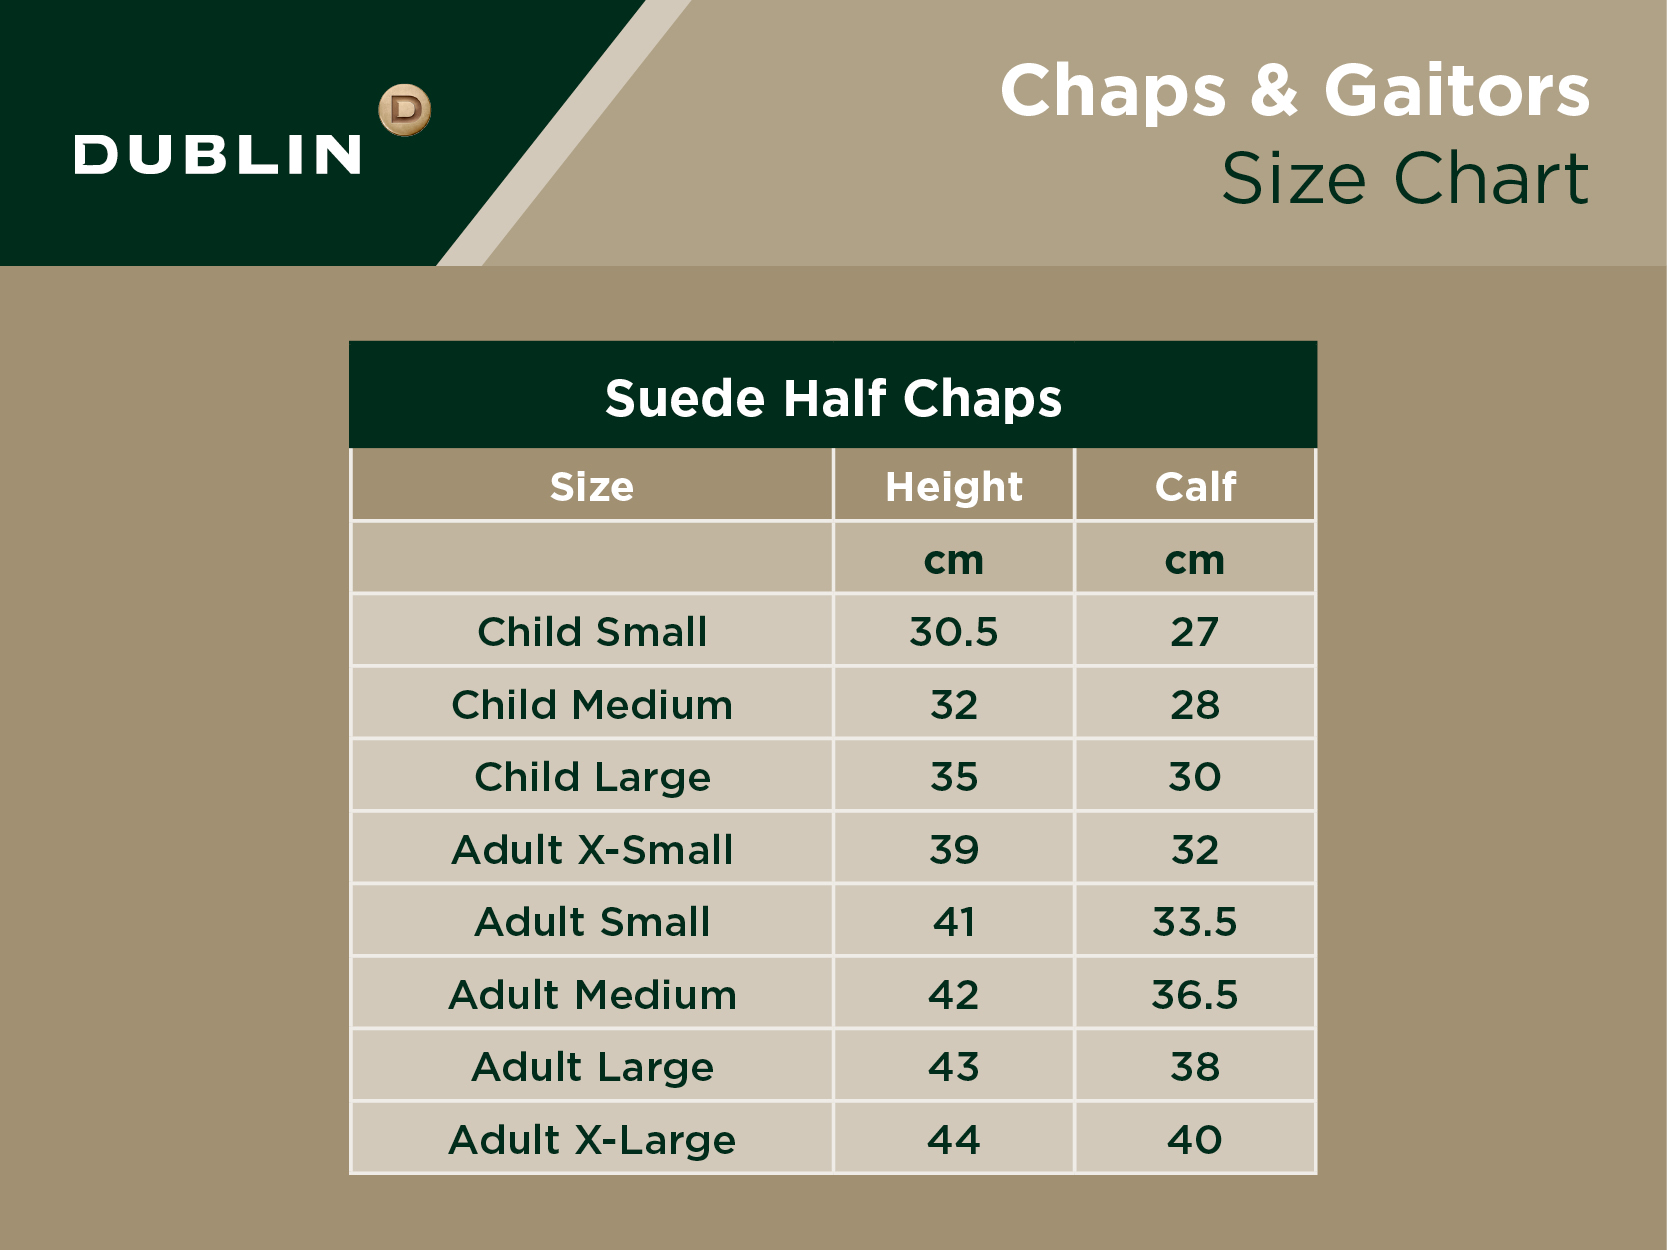 Suede Half Chaps Size Chart